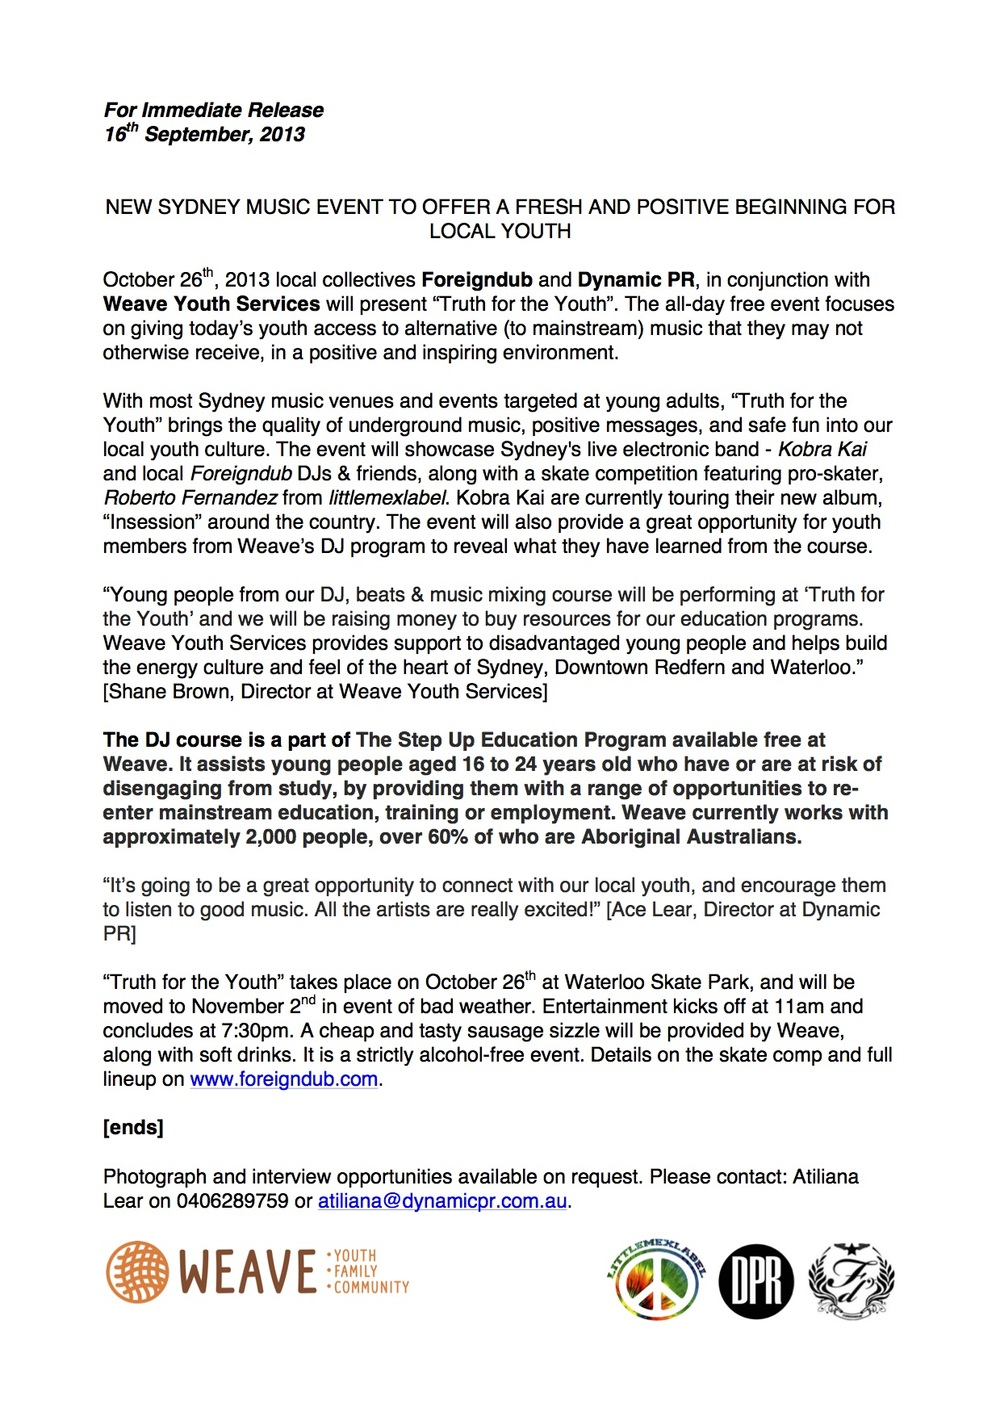 Press Release by Ace the Amara, created for Truth For The Youth (Music Event). 2013